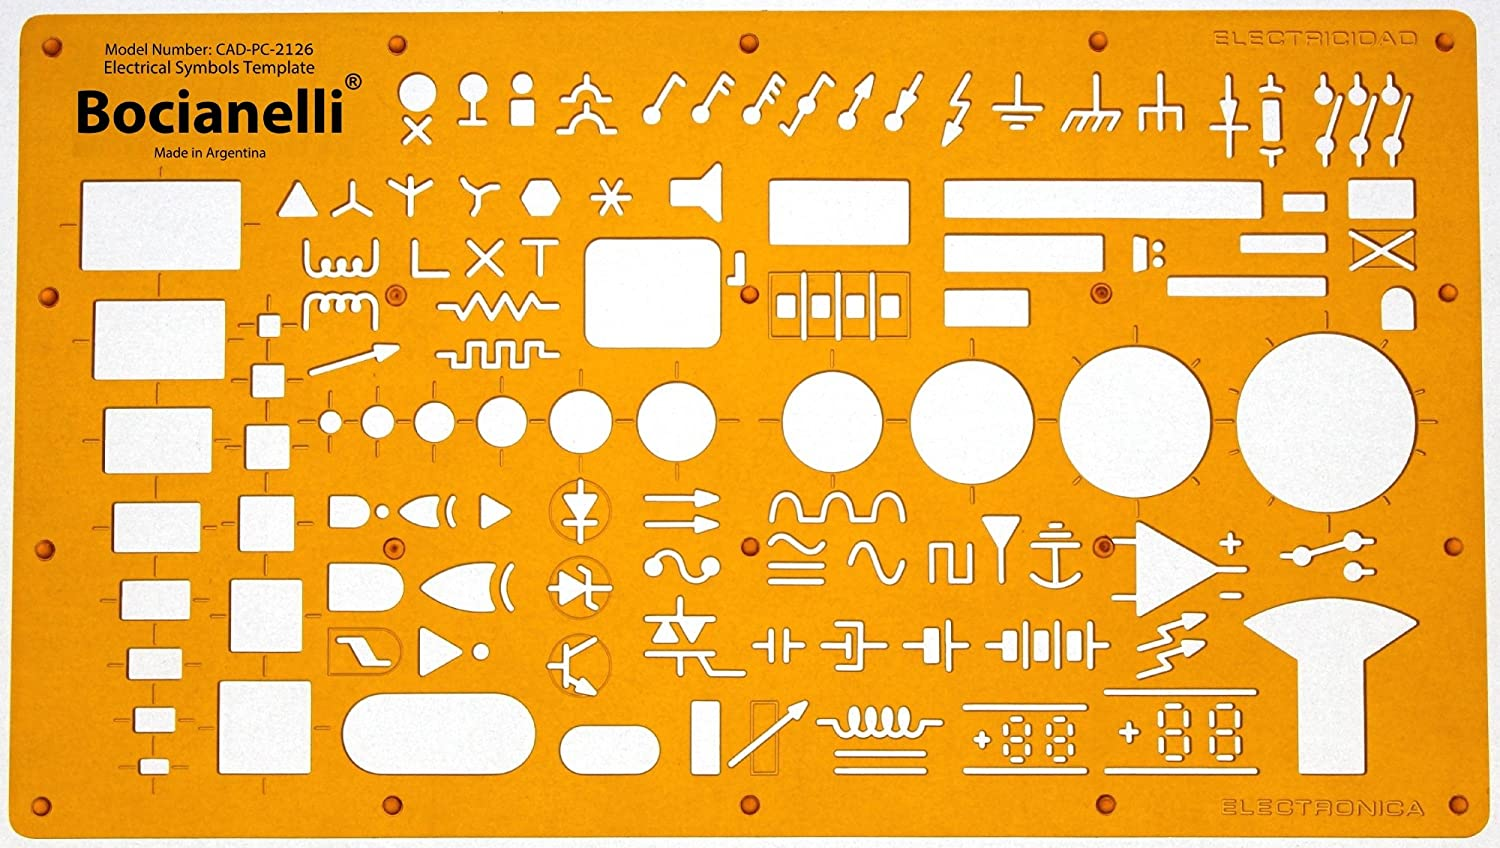 Electrical And Electronic Installation Symbols Drawing Nec Load Center Wiring Free Download Diagram Schematic Template Stencil Engineering Drafting Supplies Layout Plan